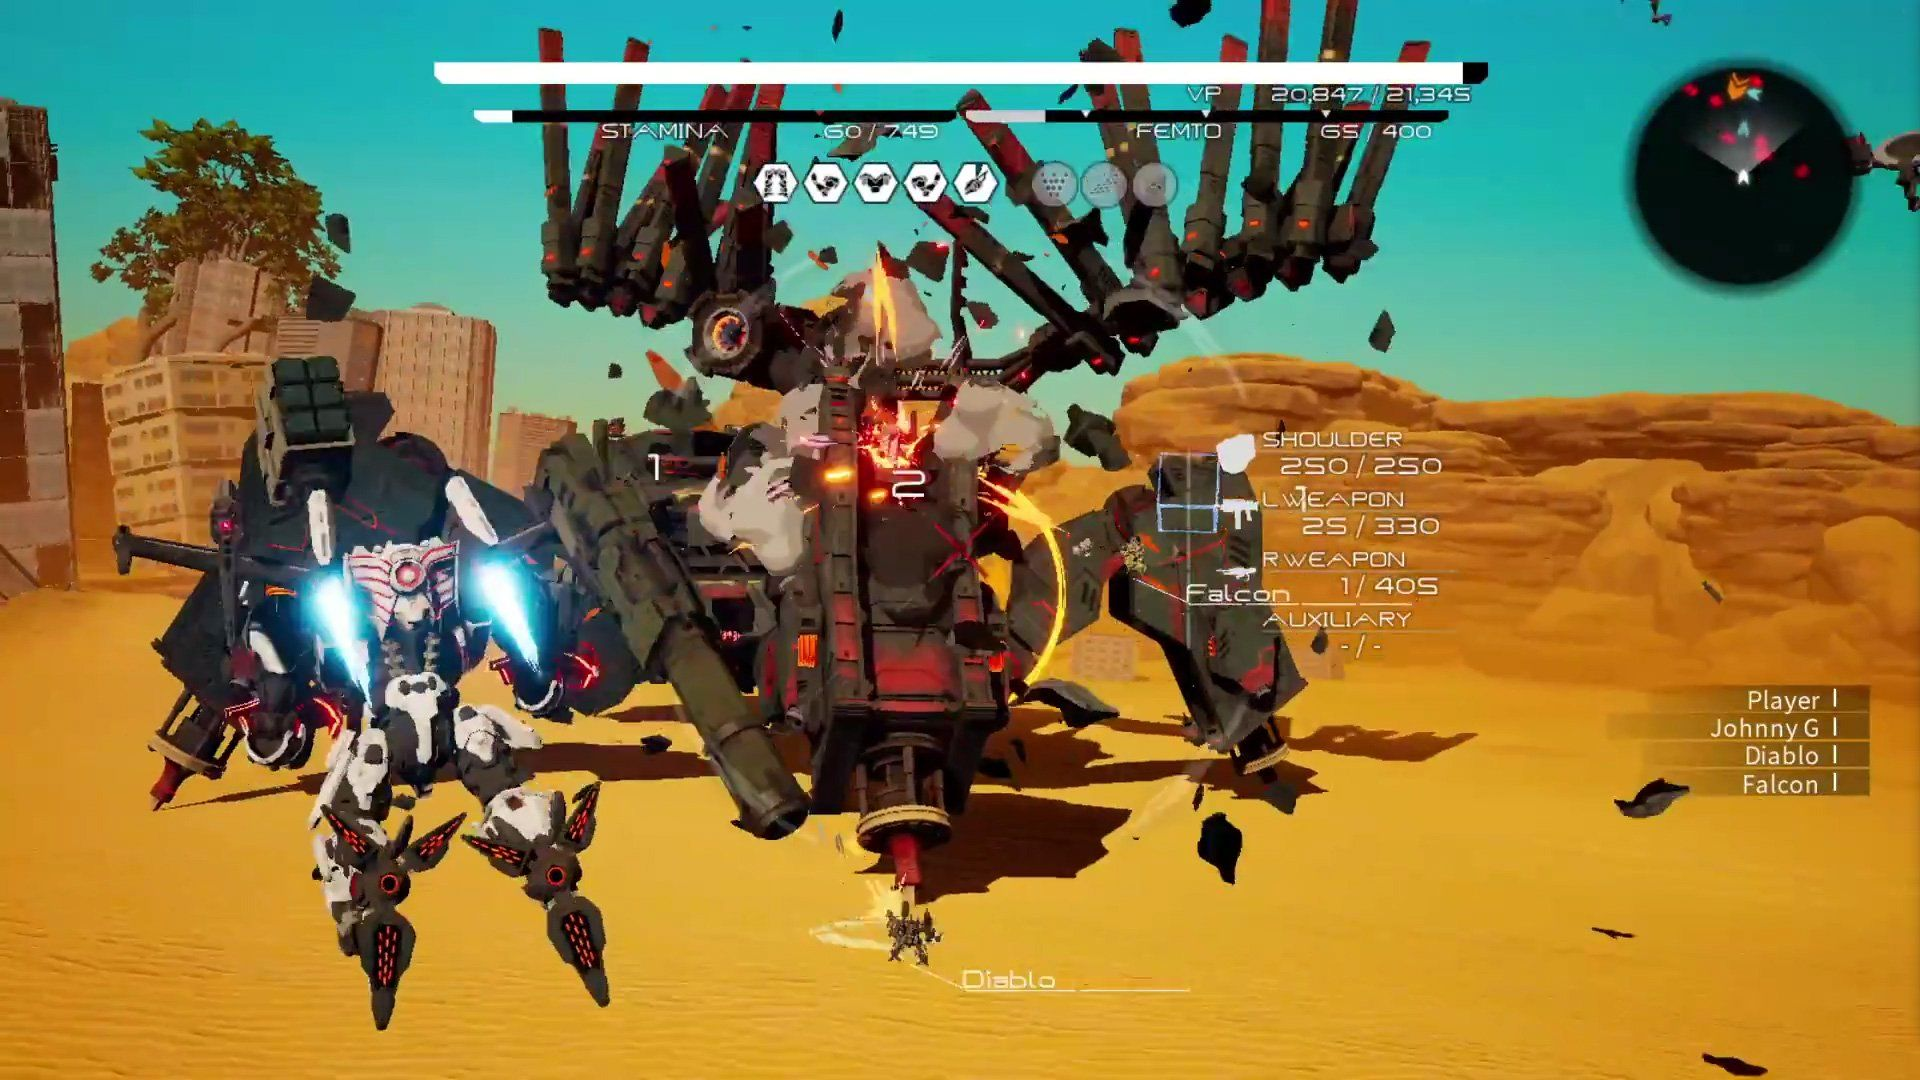 Takeaways from 30 minutes of Daemon X Machina gameplay ...